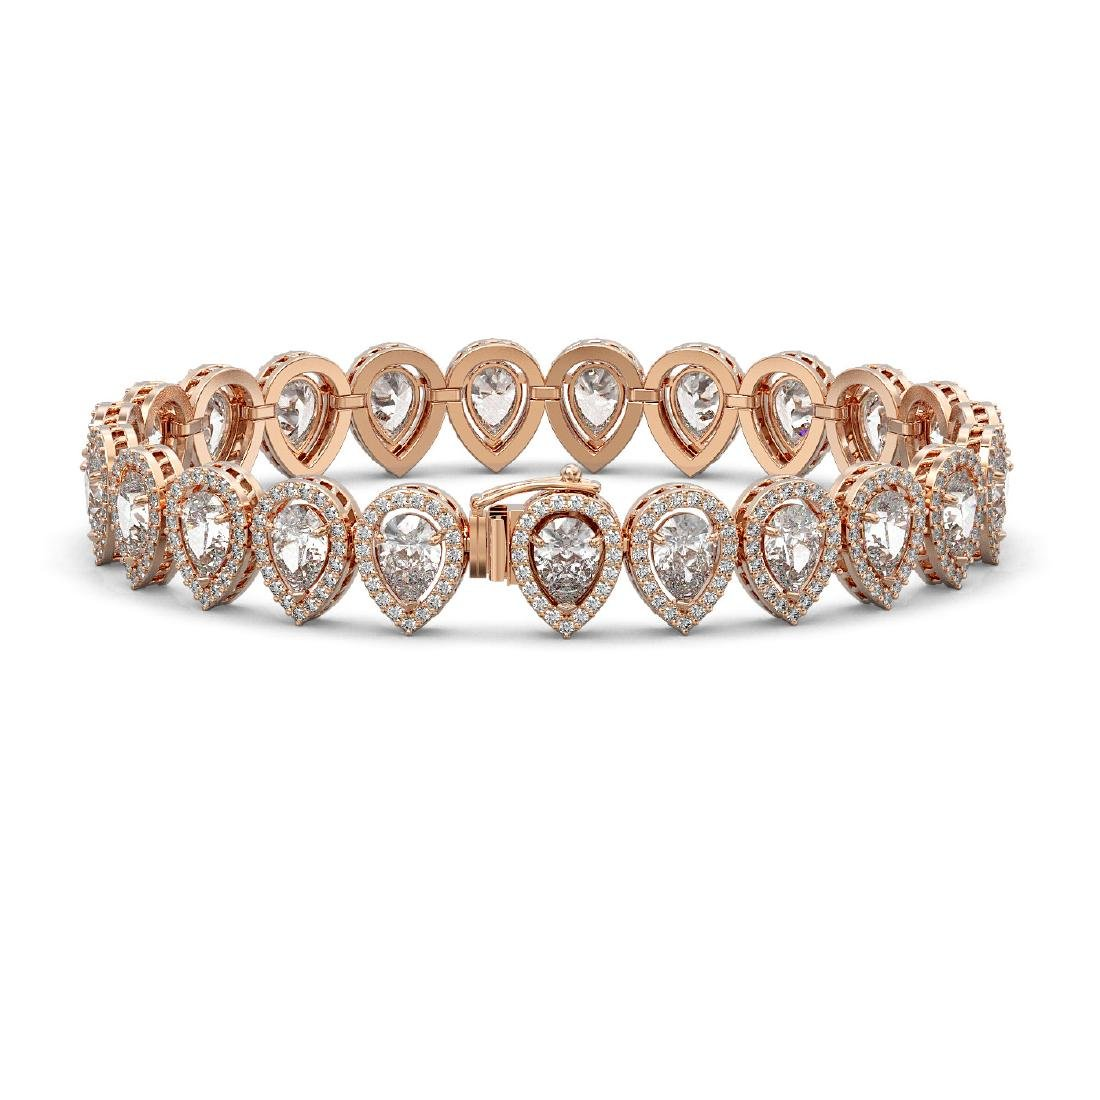 15.85 CTW Pear Diamond Designer Bracelet 18K Rose Gold - 2